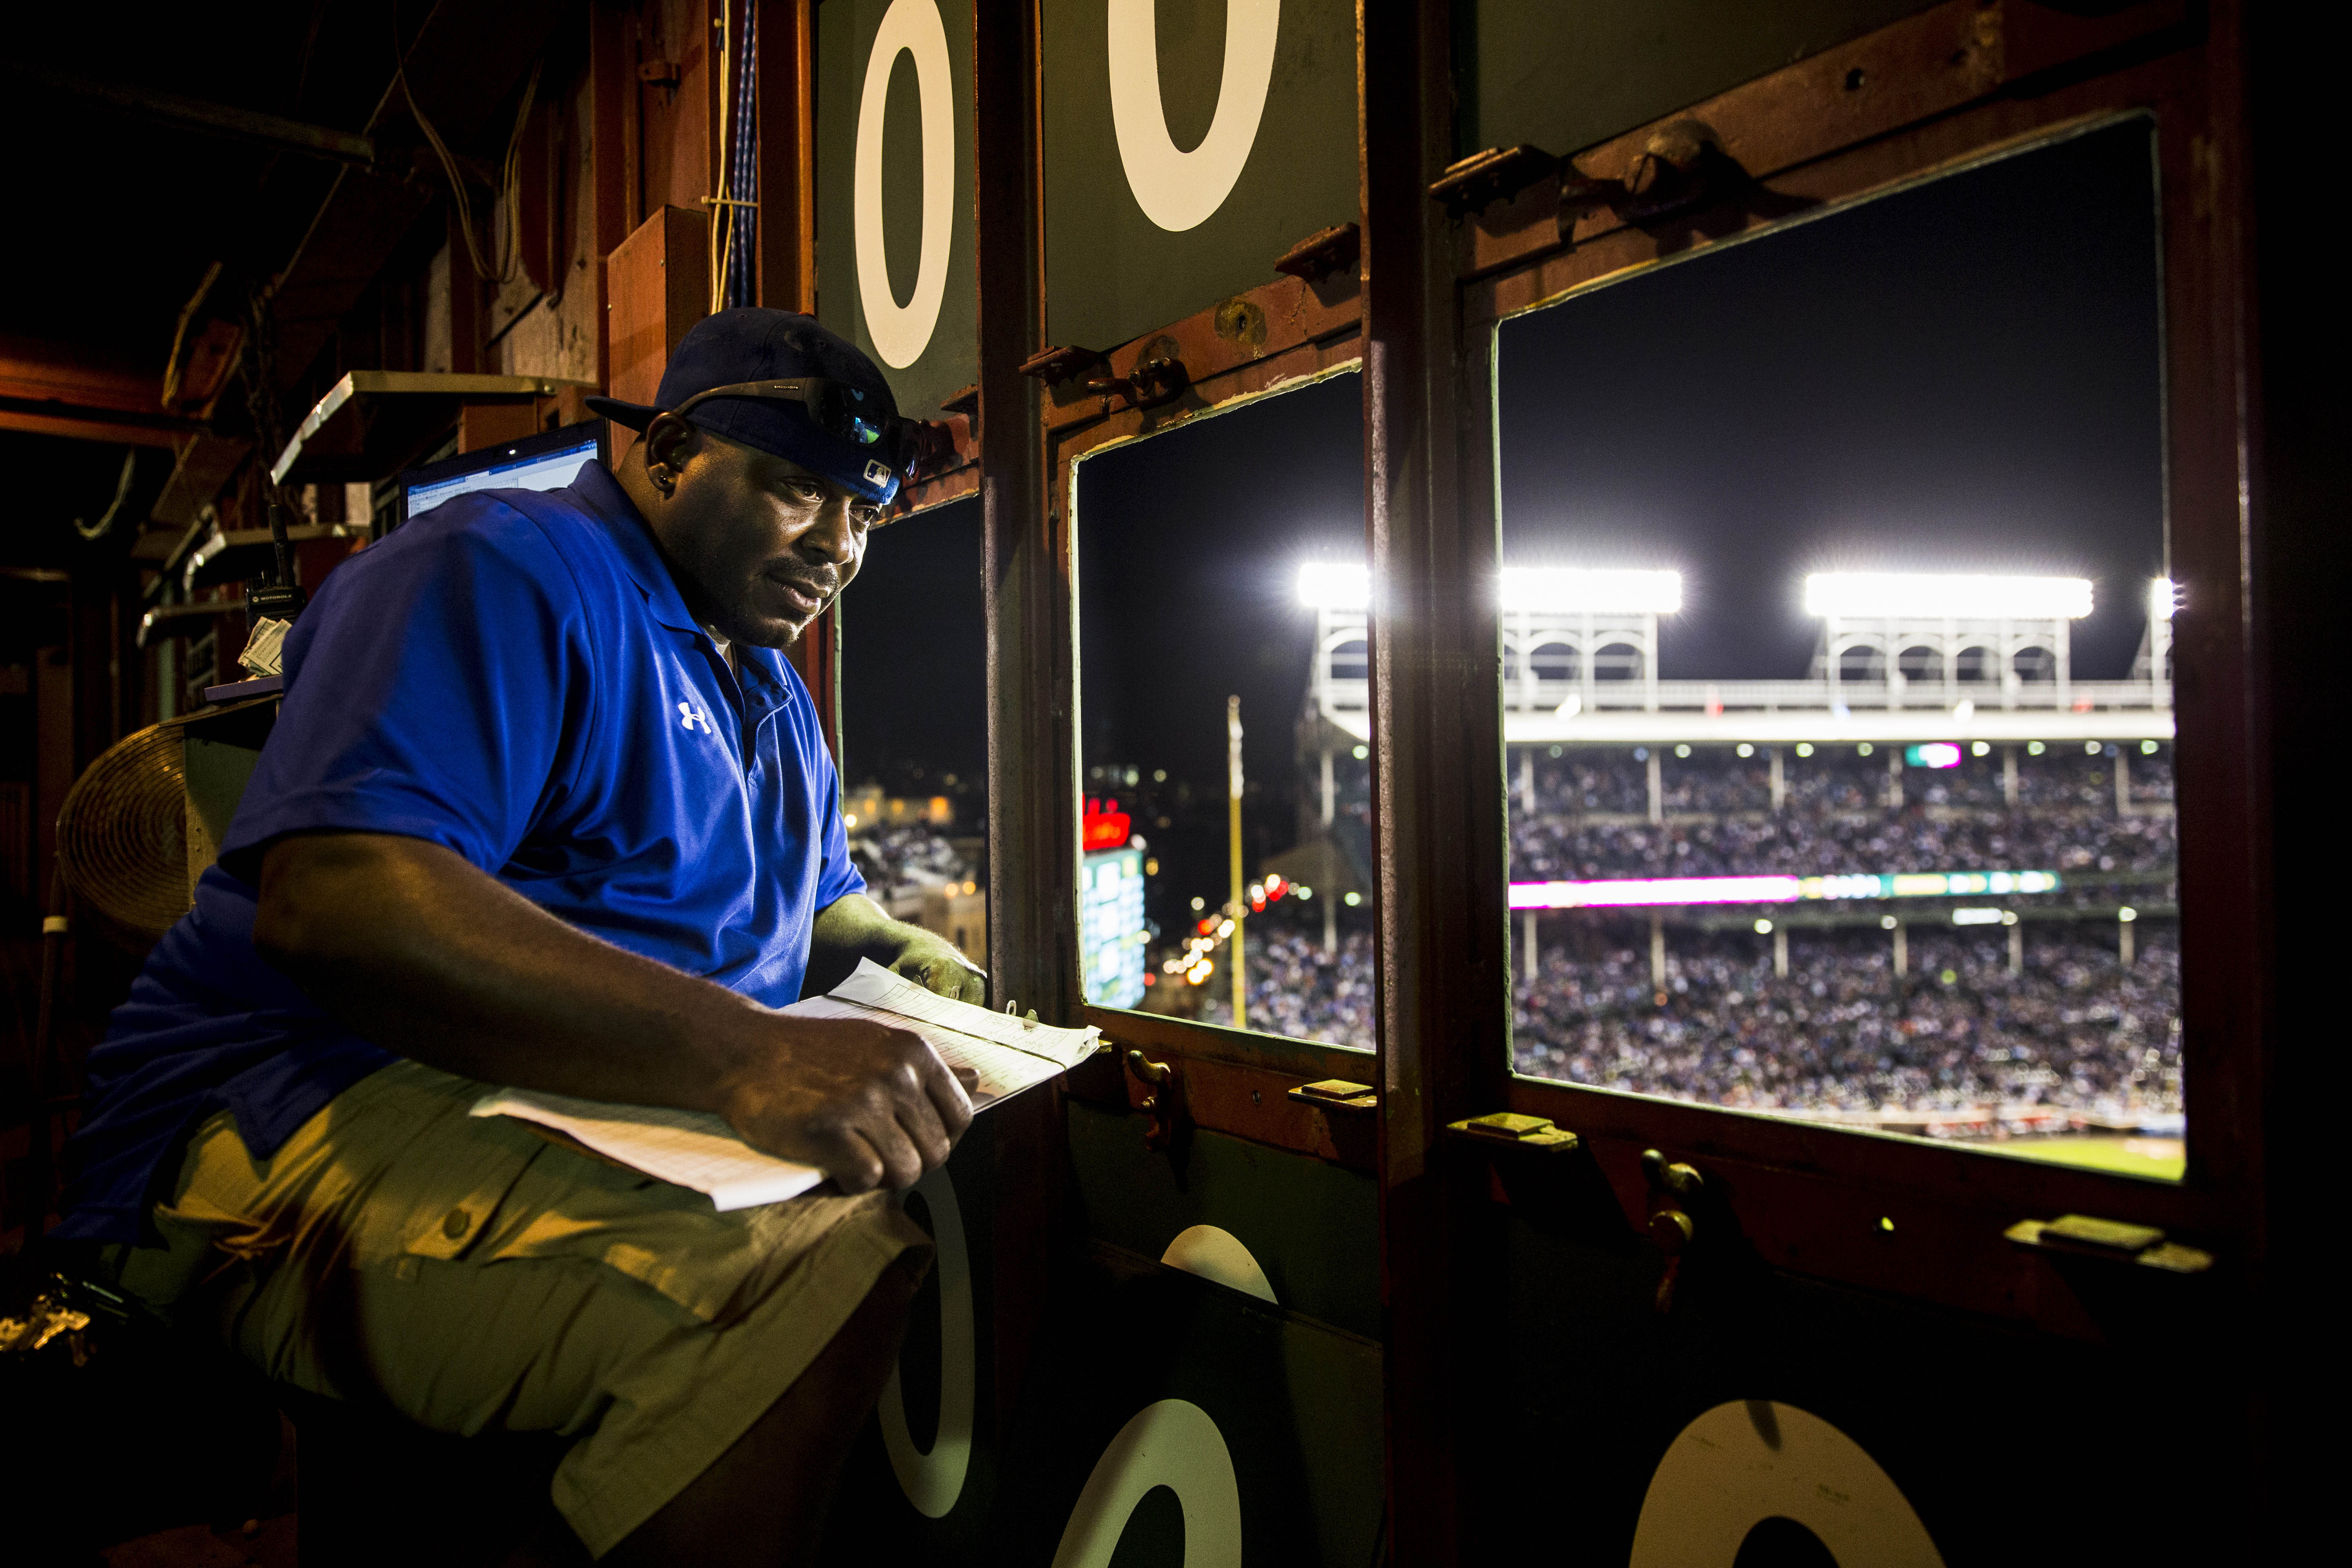 From Where I See It, Wrigley Field on September 21, 2016 in Chicago, Illinois. (Photo by Taylor Baucom/The Players' Tribune)